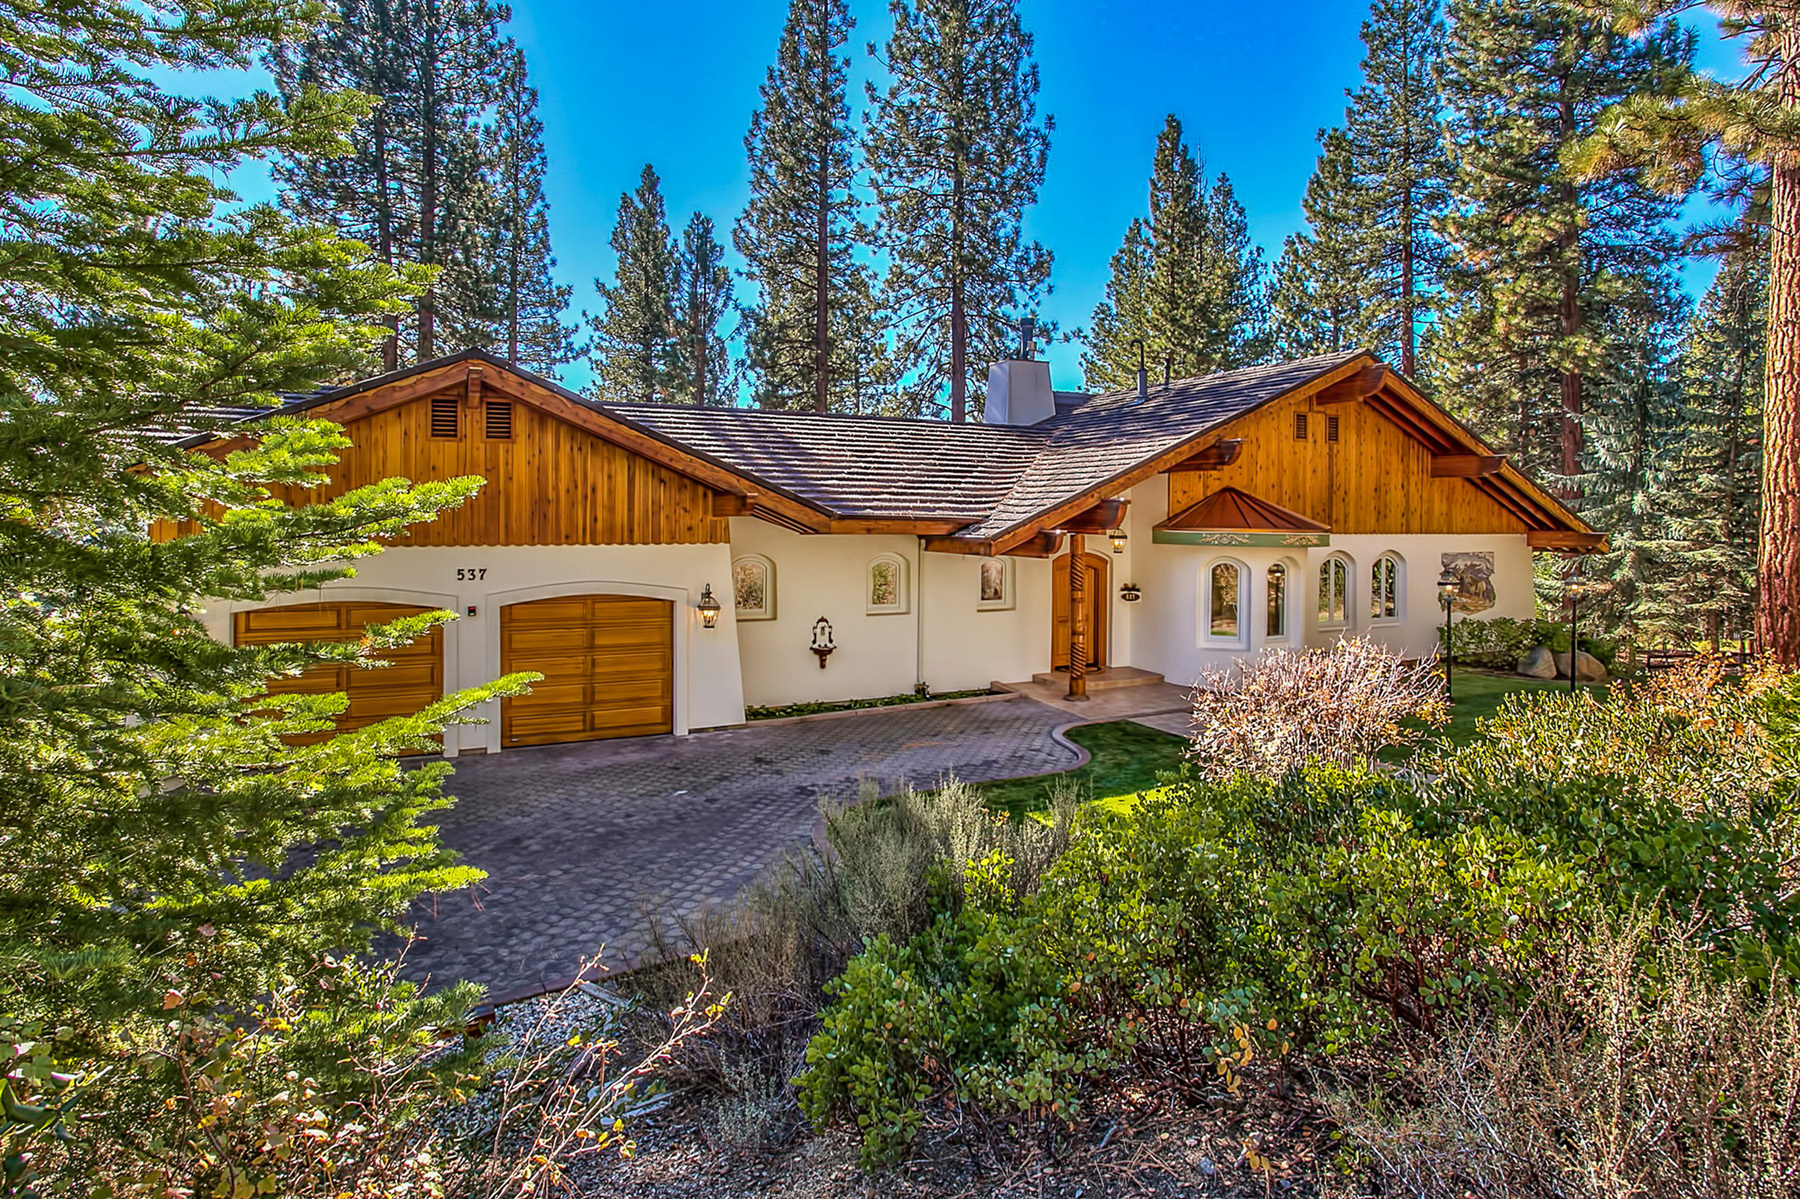 Single Family Home for Sale at 537 Ponderosa Avenue Incline Village, Nevada 89451 United States